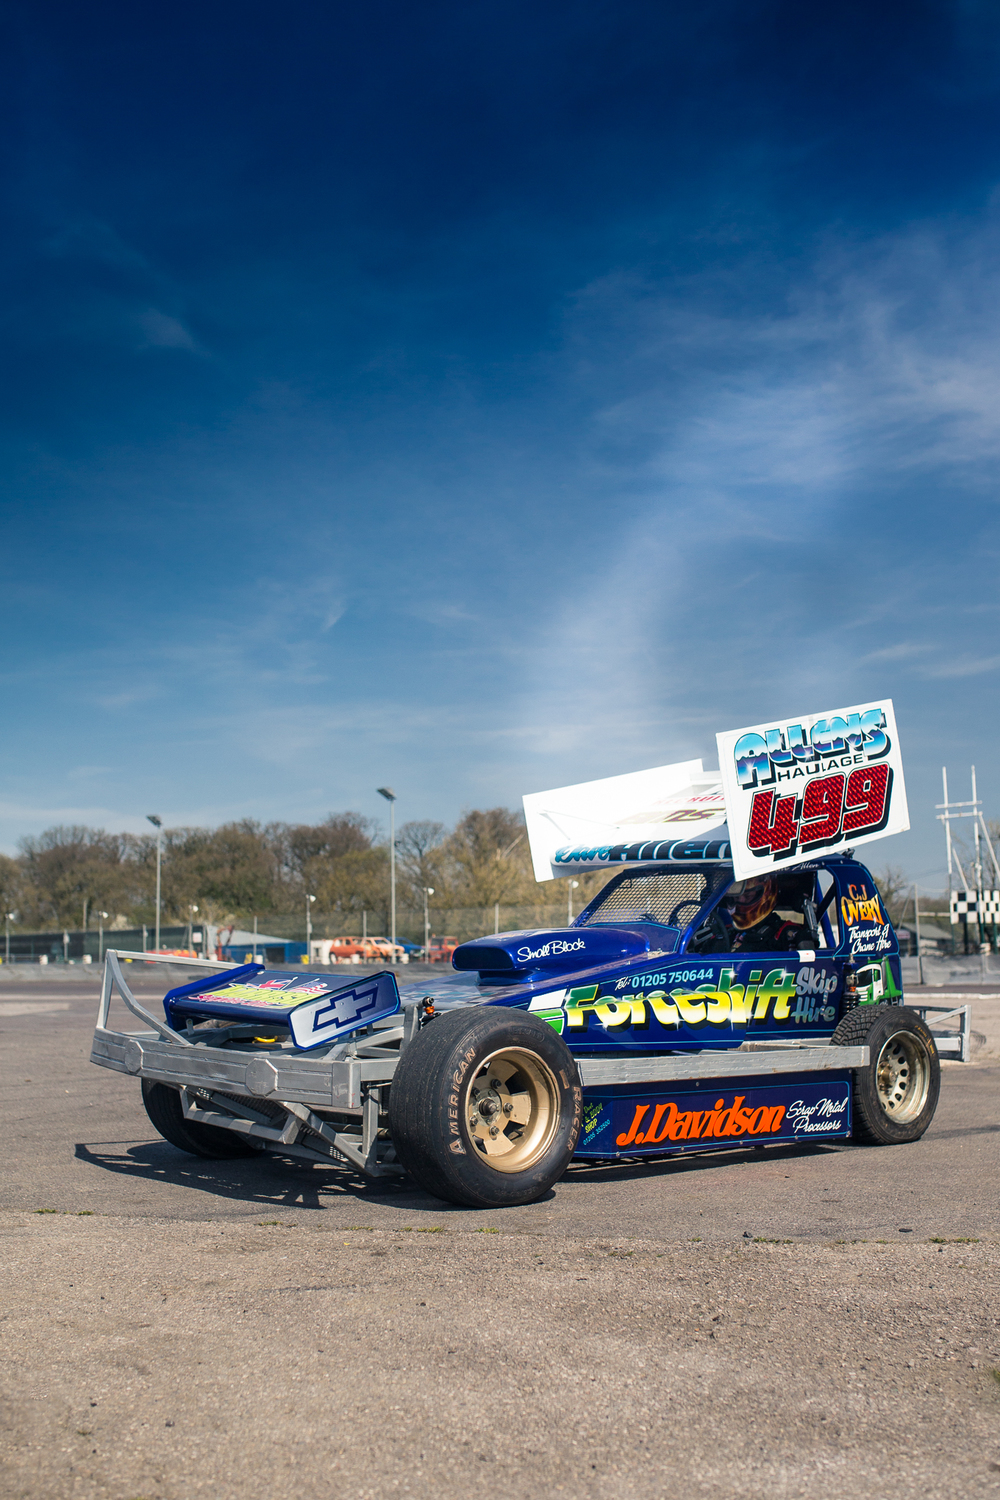 A 600+ BHP stock car makes some pretty mean noises